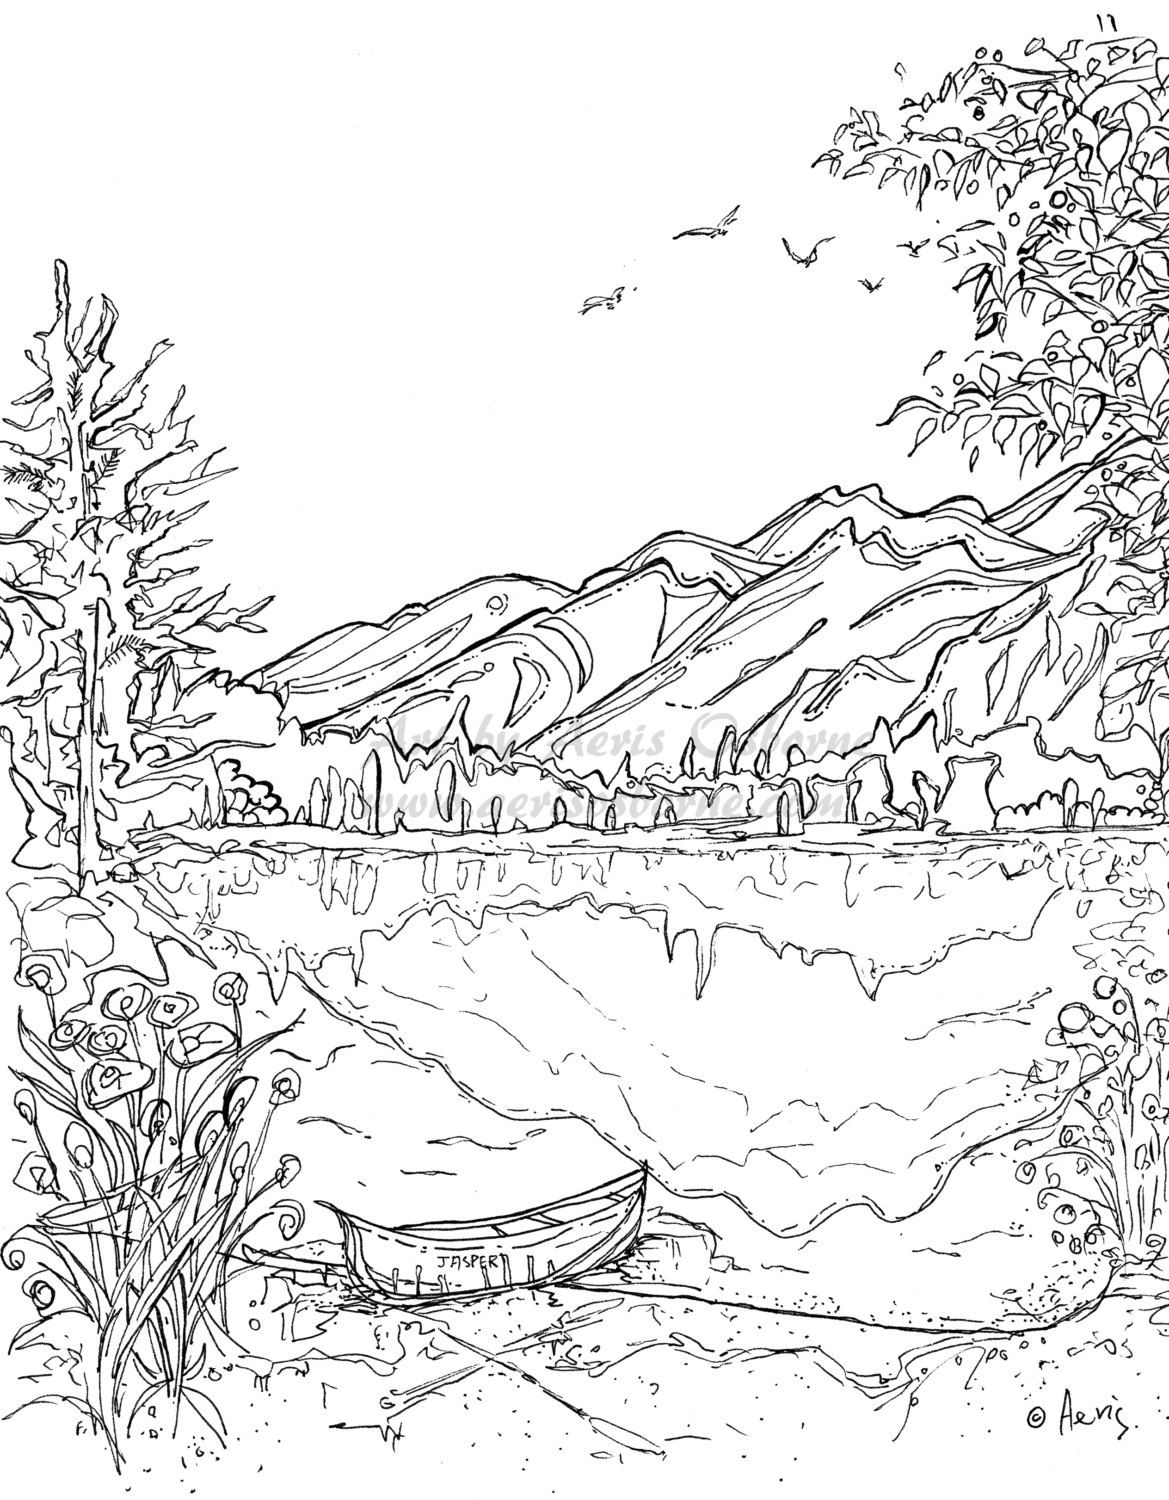 Serenity Jasper Landscape Printable Coloring Page Canoe Mountain